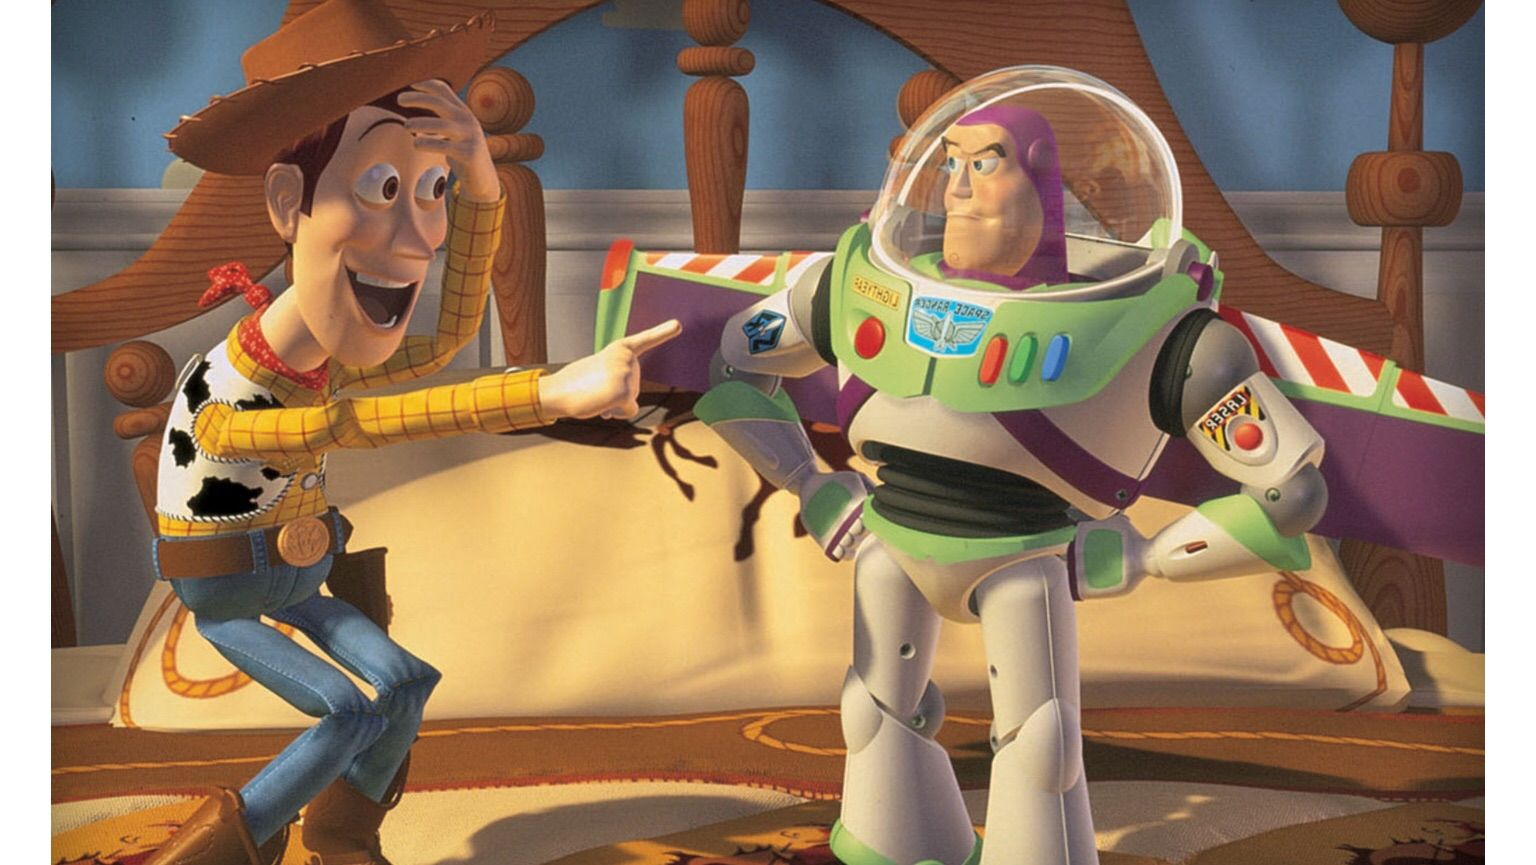 toy-story-4-woody-buzz-lightyear.jpeg